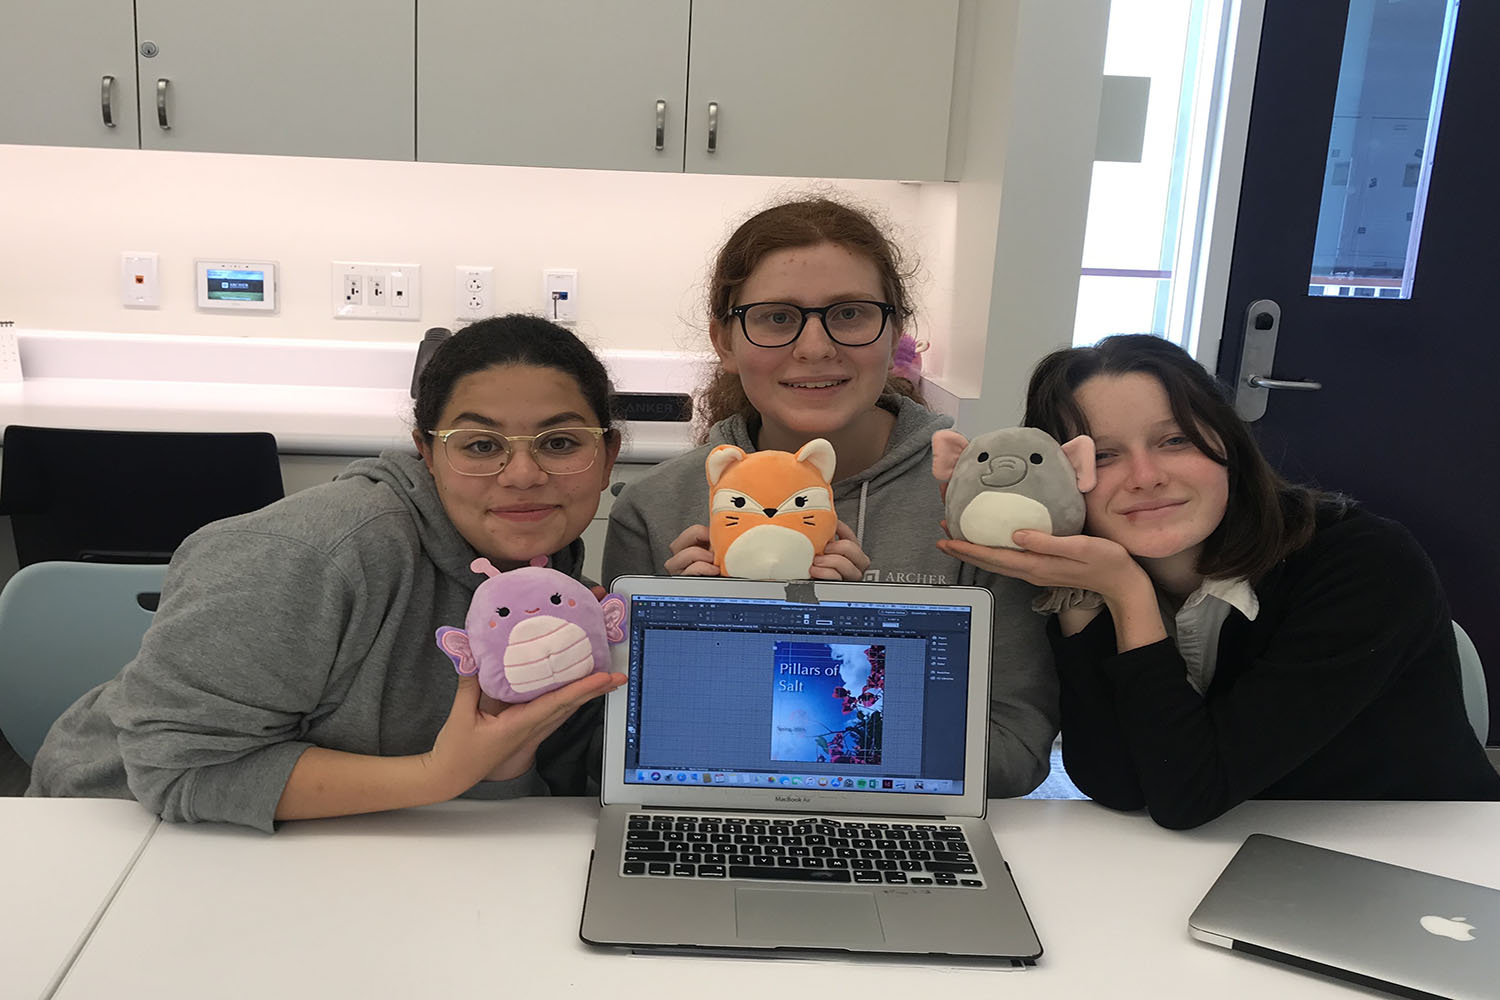 Juliet Youssef '19, Josie Gordon '20 and Madis Kennedy '21 pose with some of the many stuffed animals in the creative writing class. The class biannually contributes to and curates a literary magazine, Pillars of Salt.